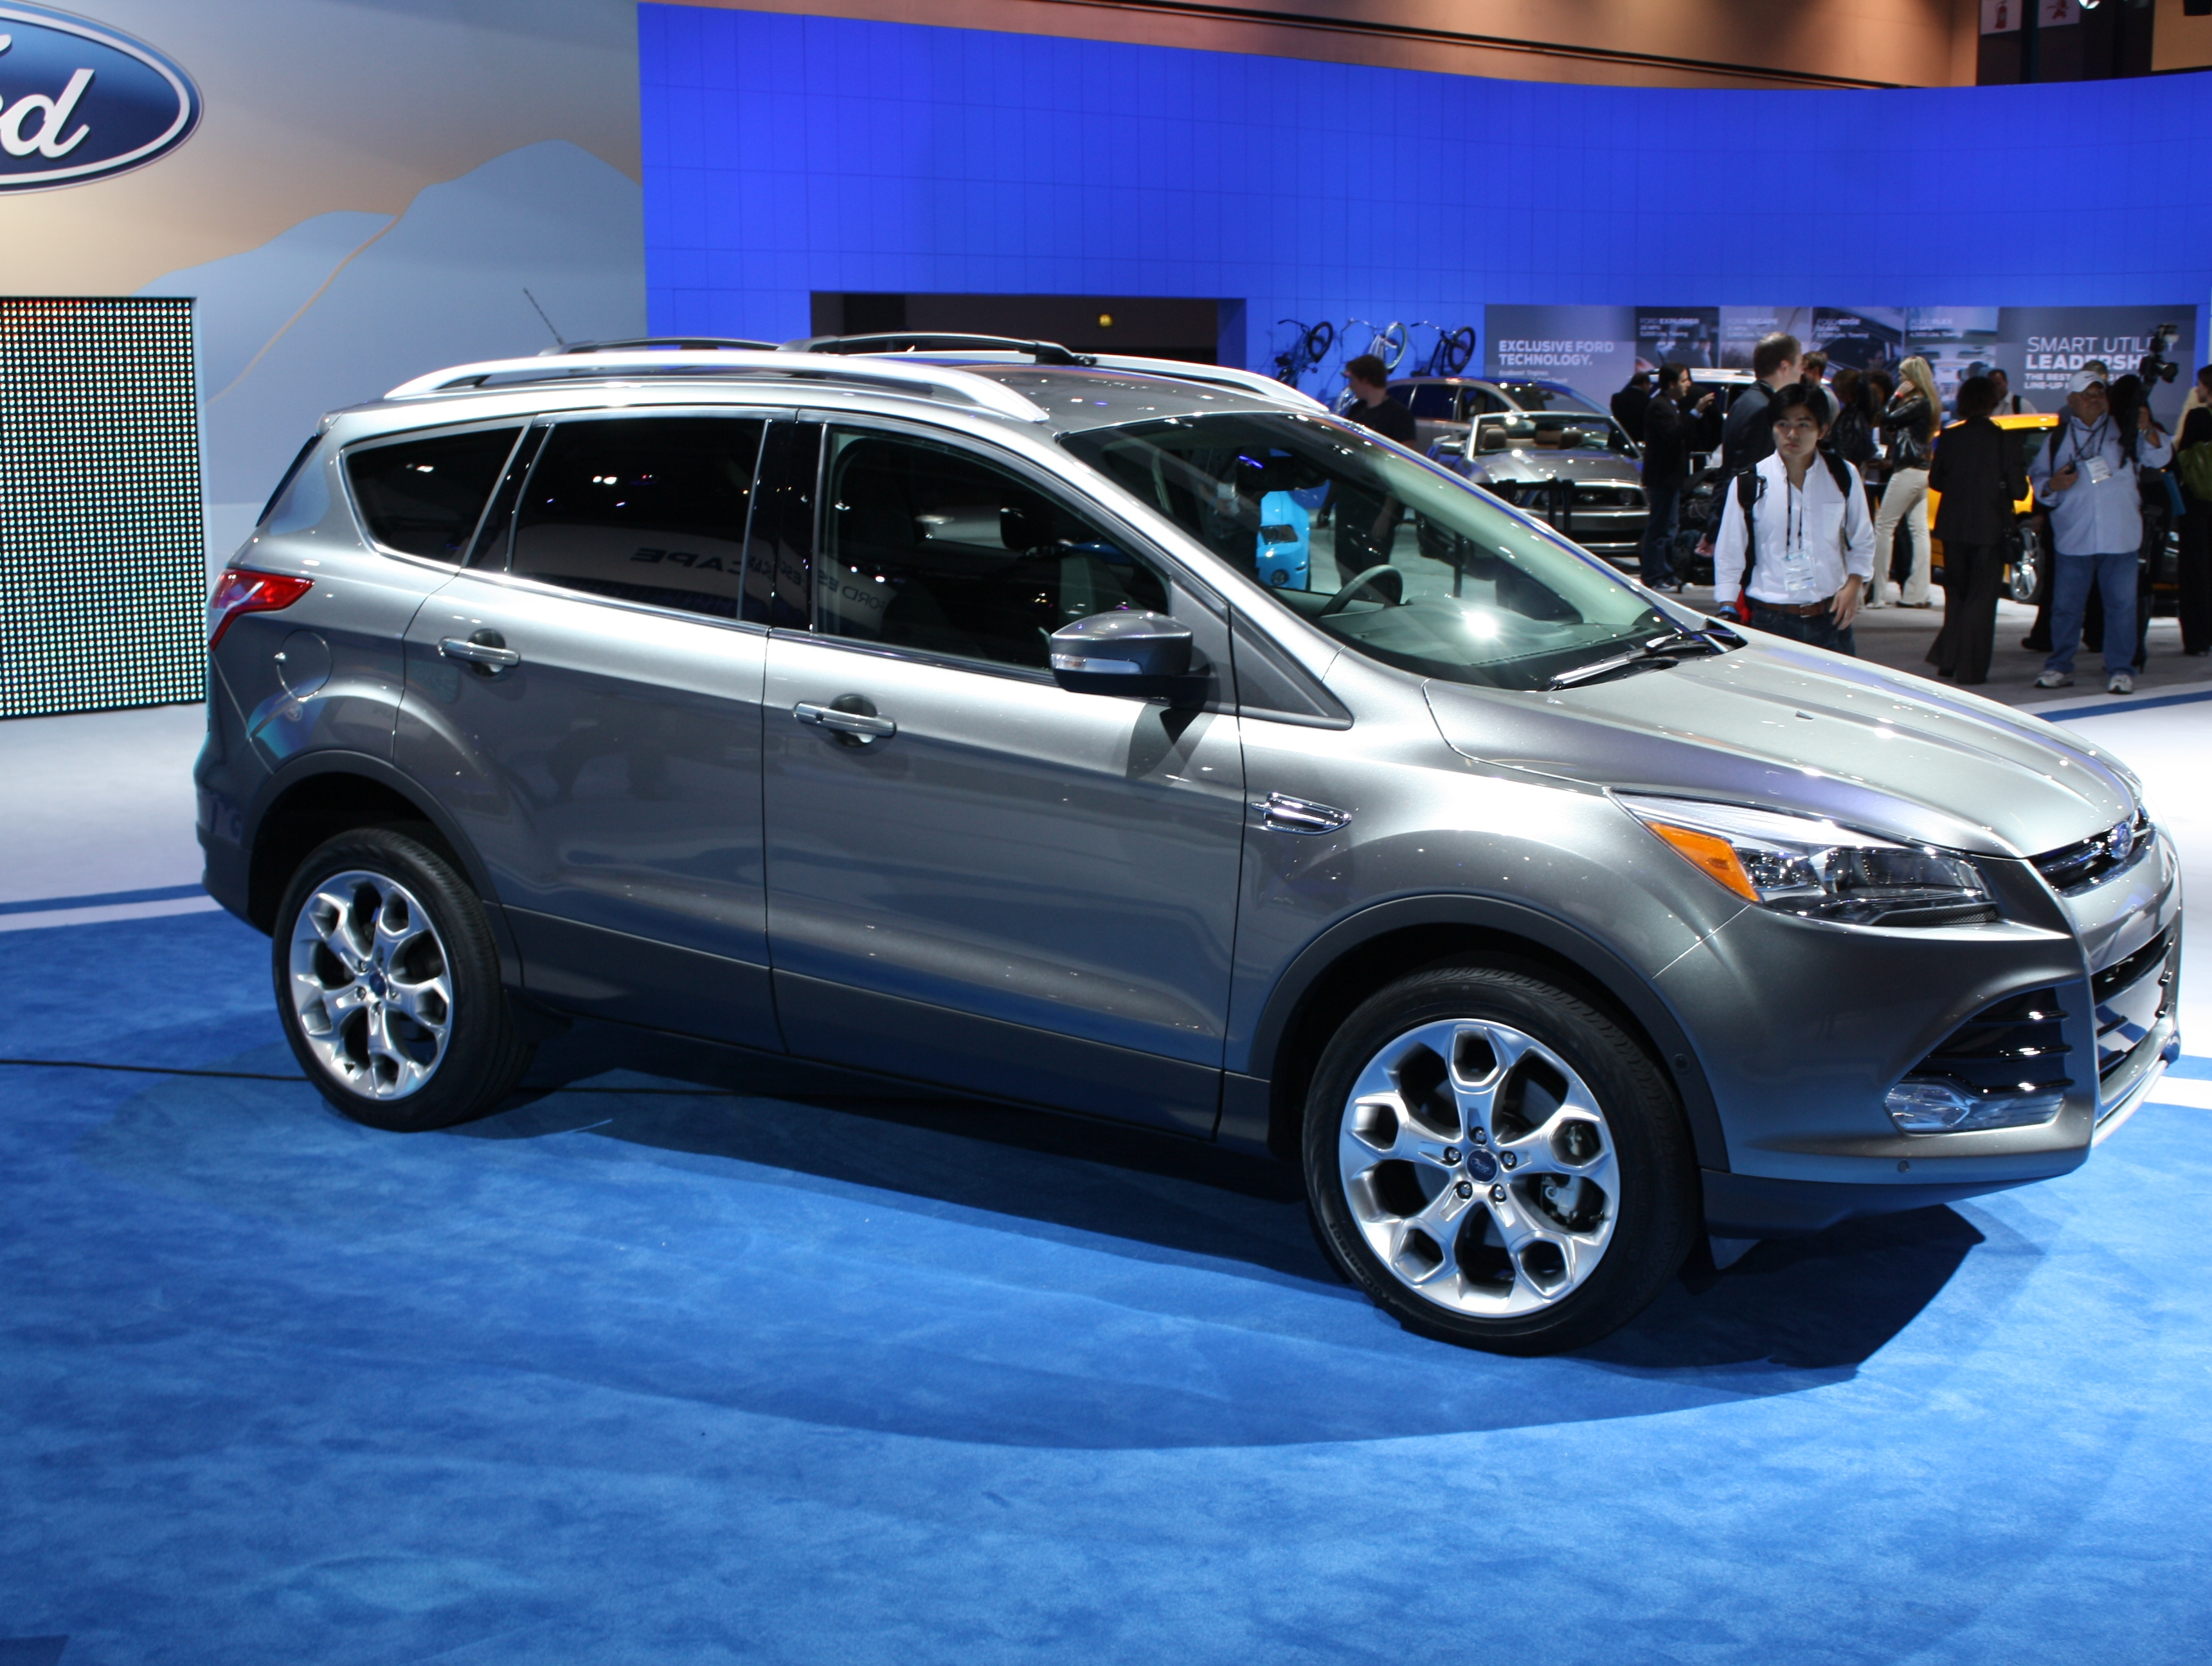 2013 Ford Escape Shows (View 30 of 31)